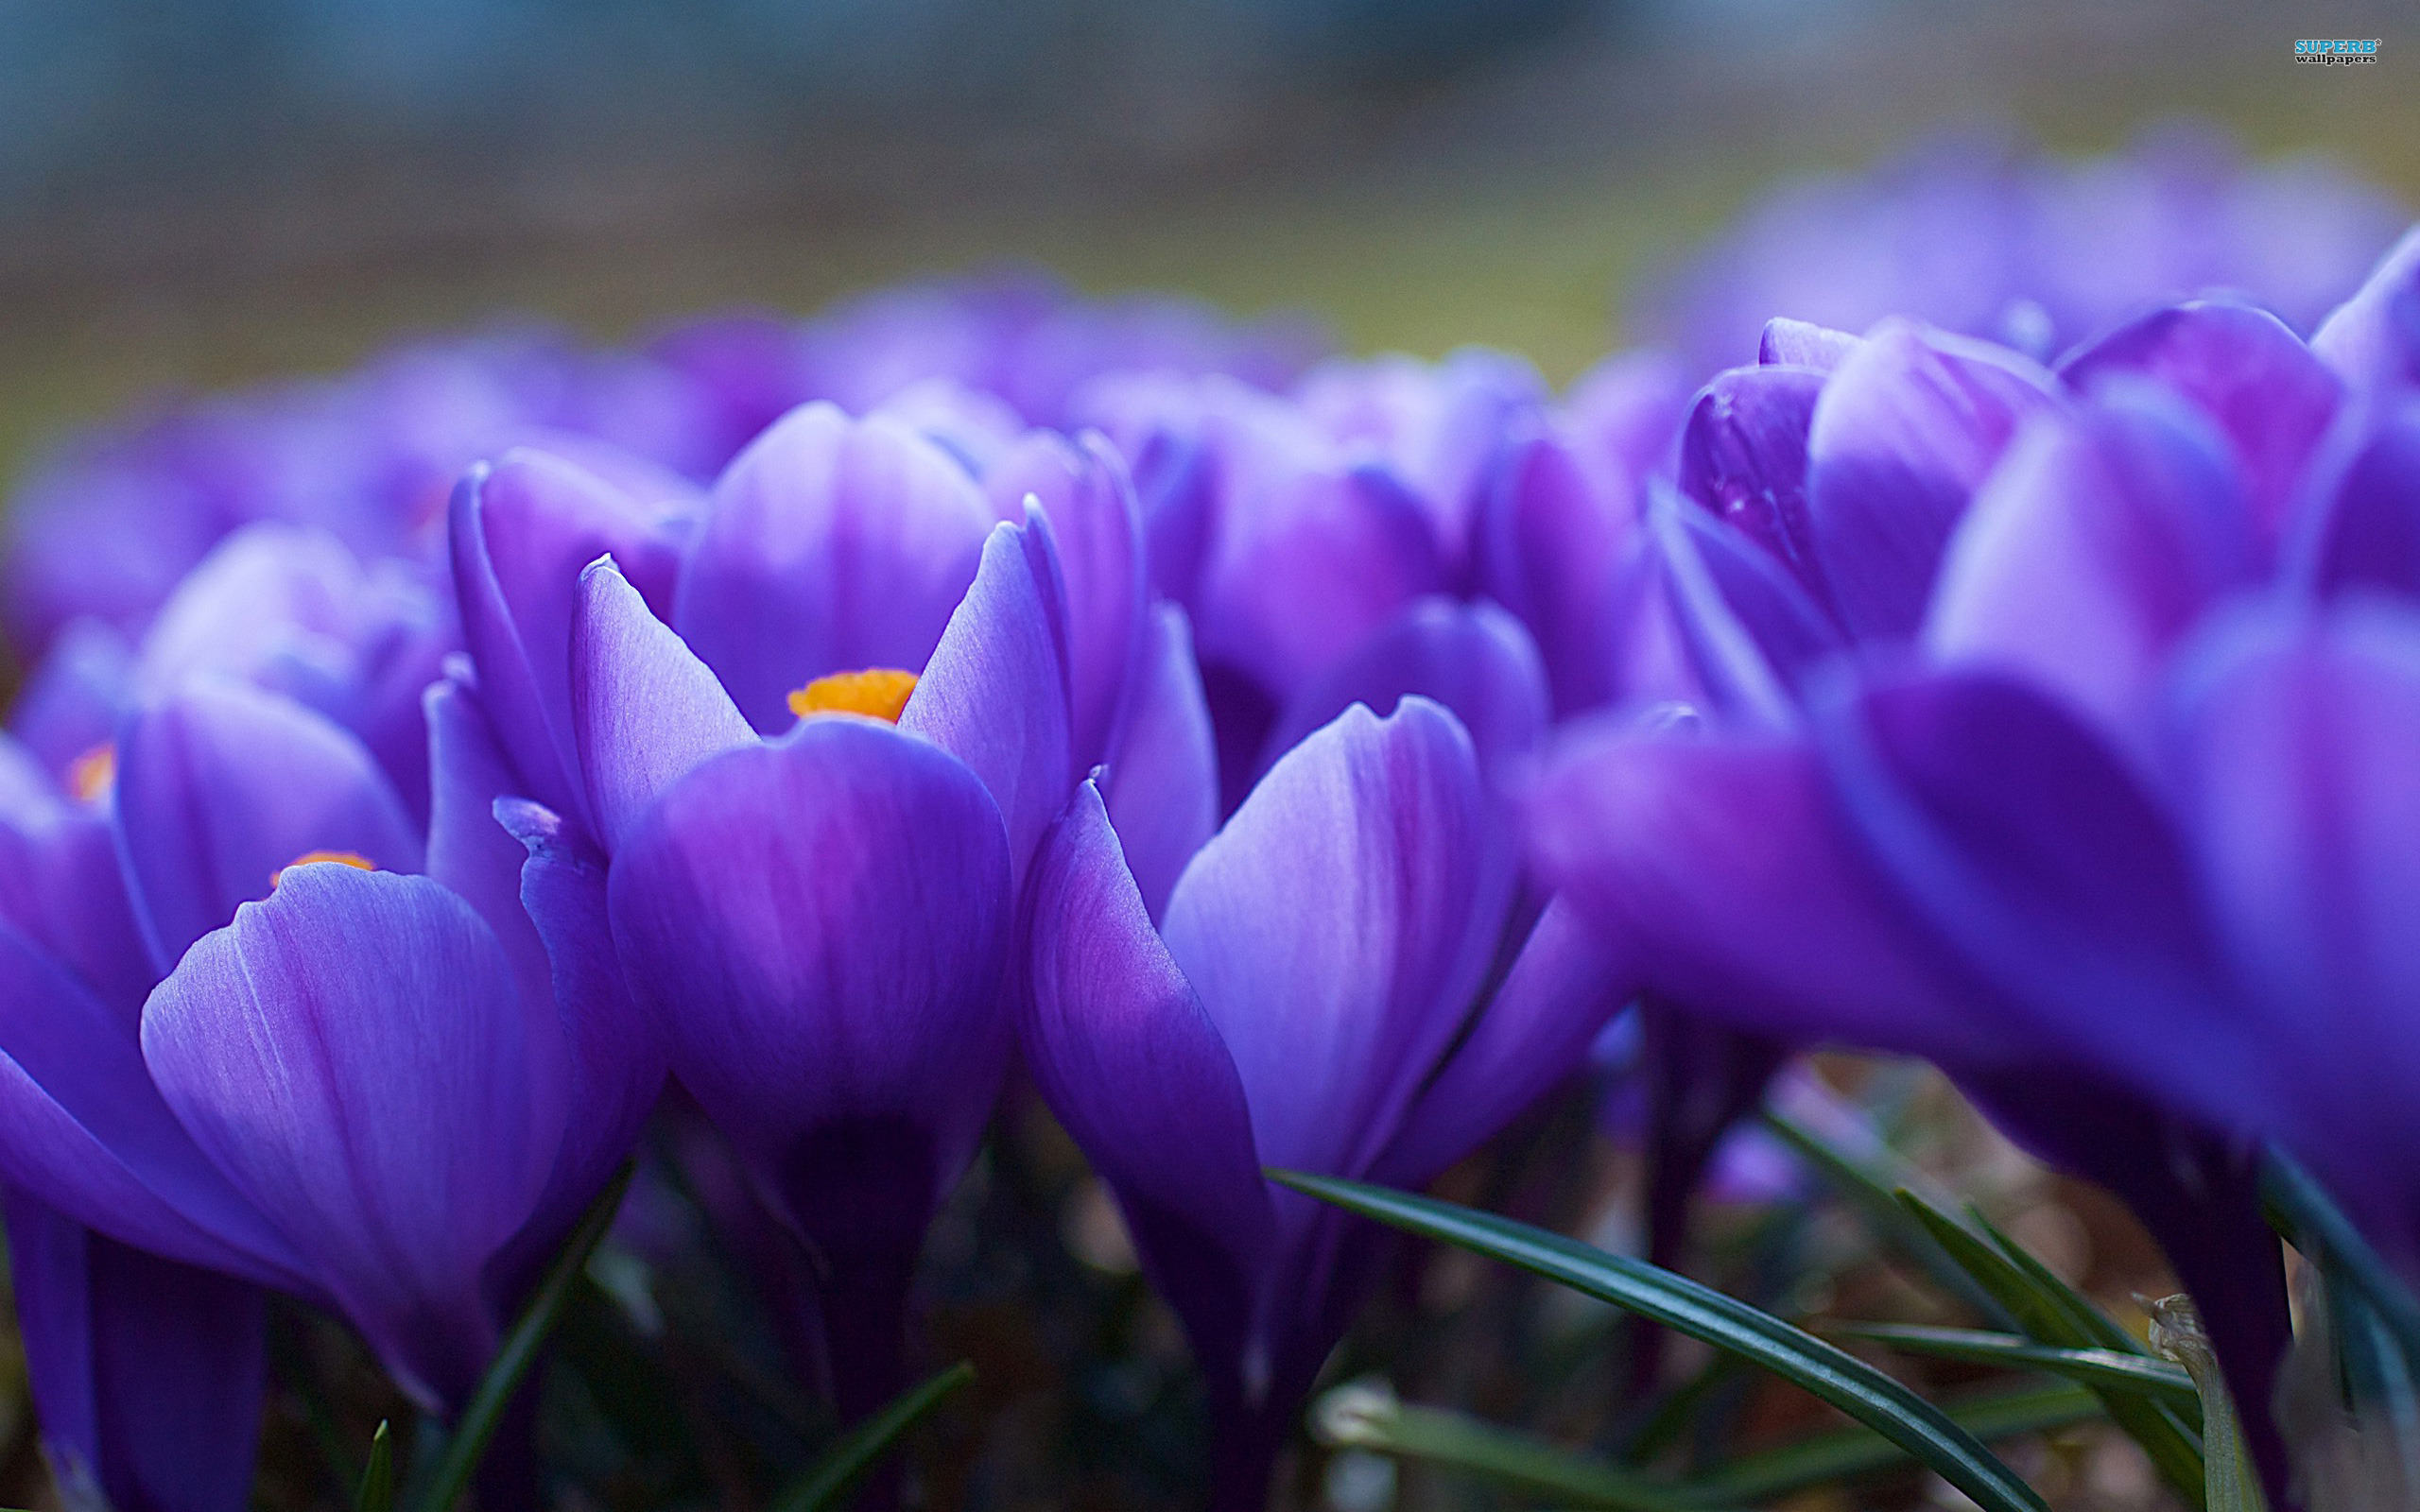 Crocus wallpaper 2560x1600